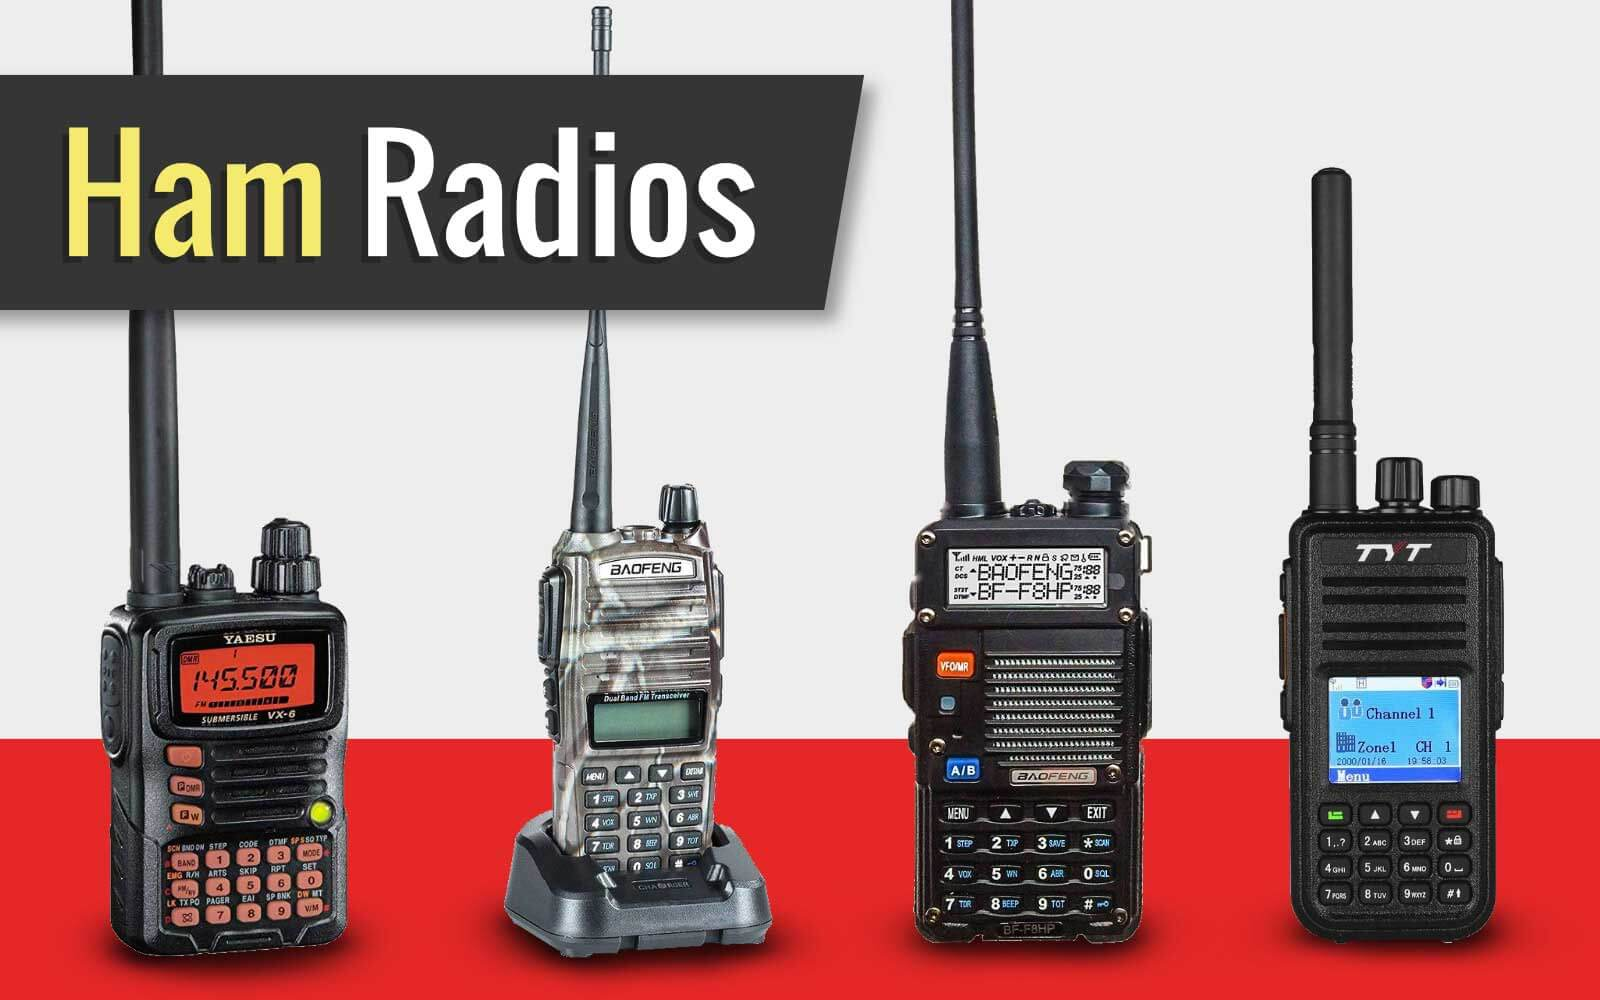 The Best Ham Radios That I've Tested